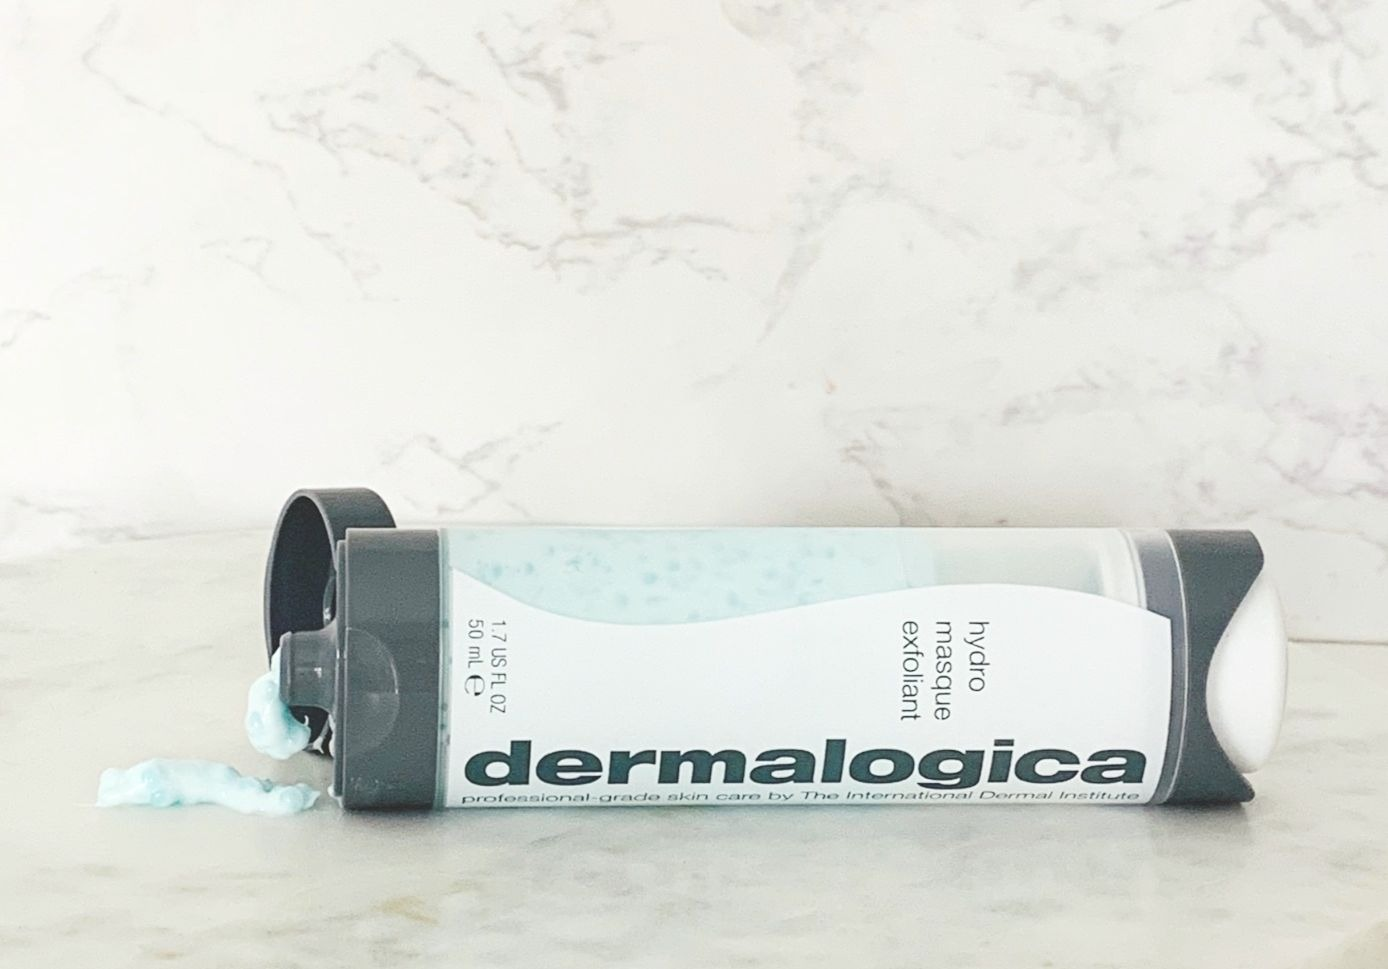 Dermalogica Hydro Masque Exfoliant Review